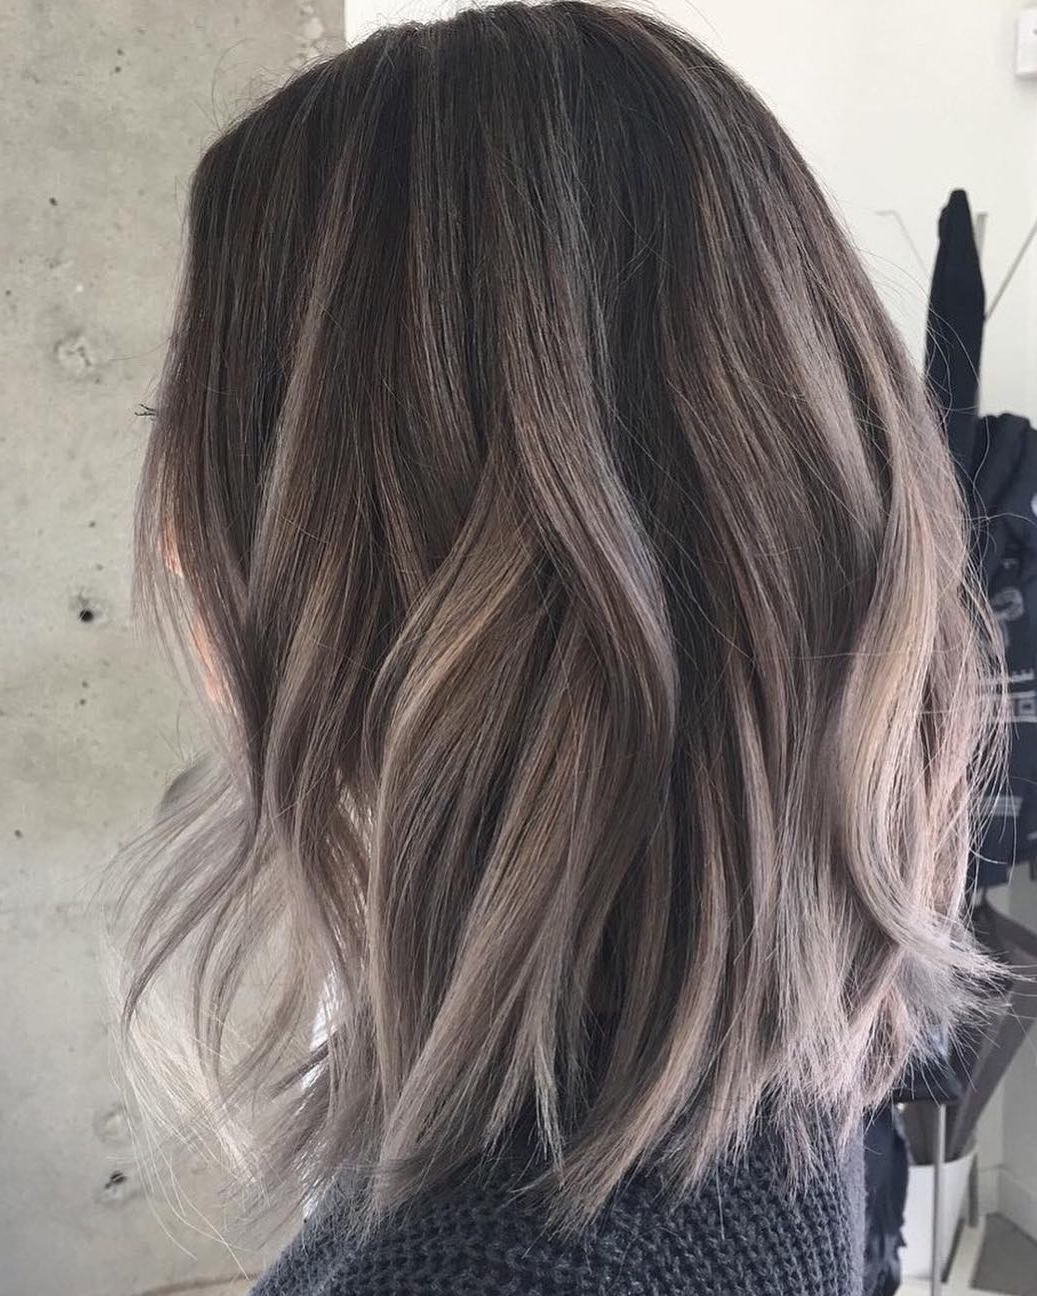 Fashionable Medium Hairstyles And Colors Regarding 10 Medium Length Hair Color Ideas (View 7 of 20)